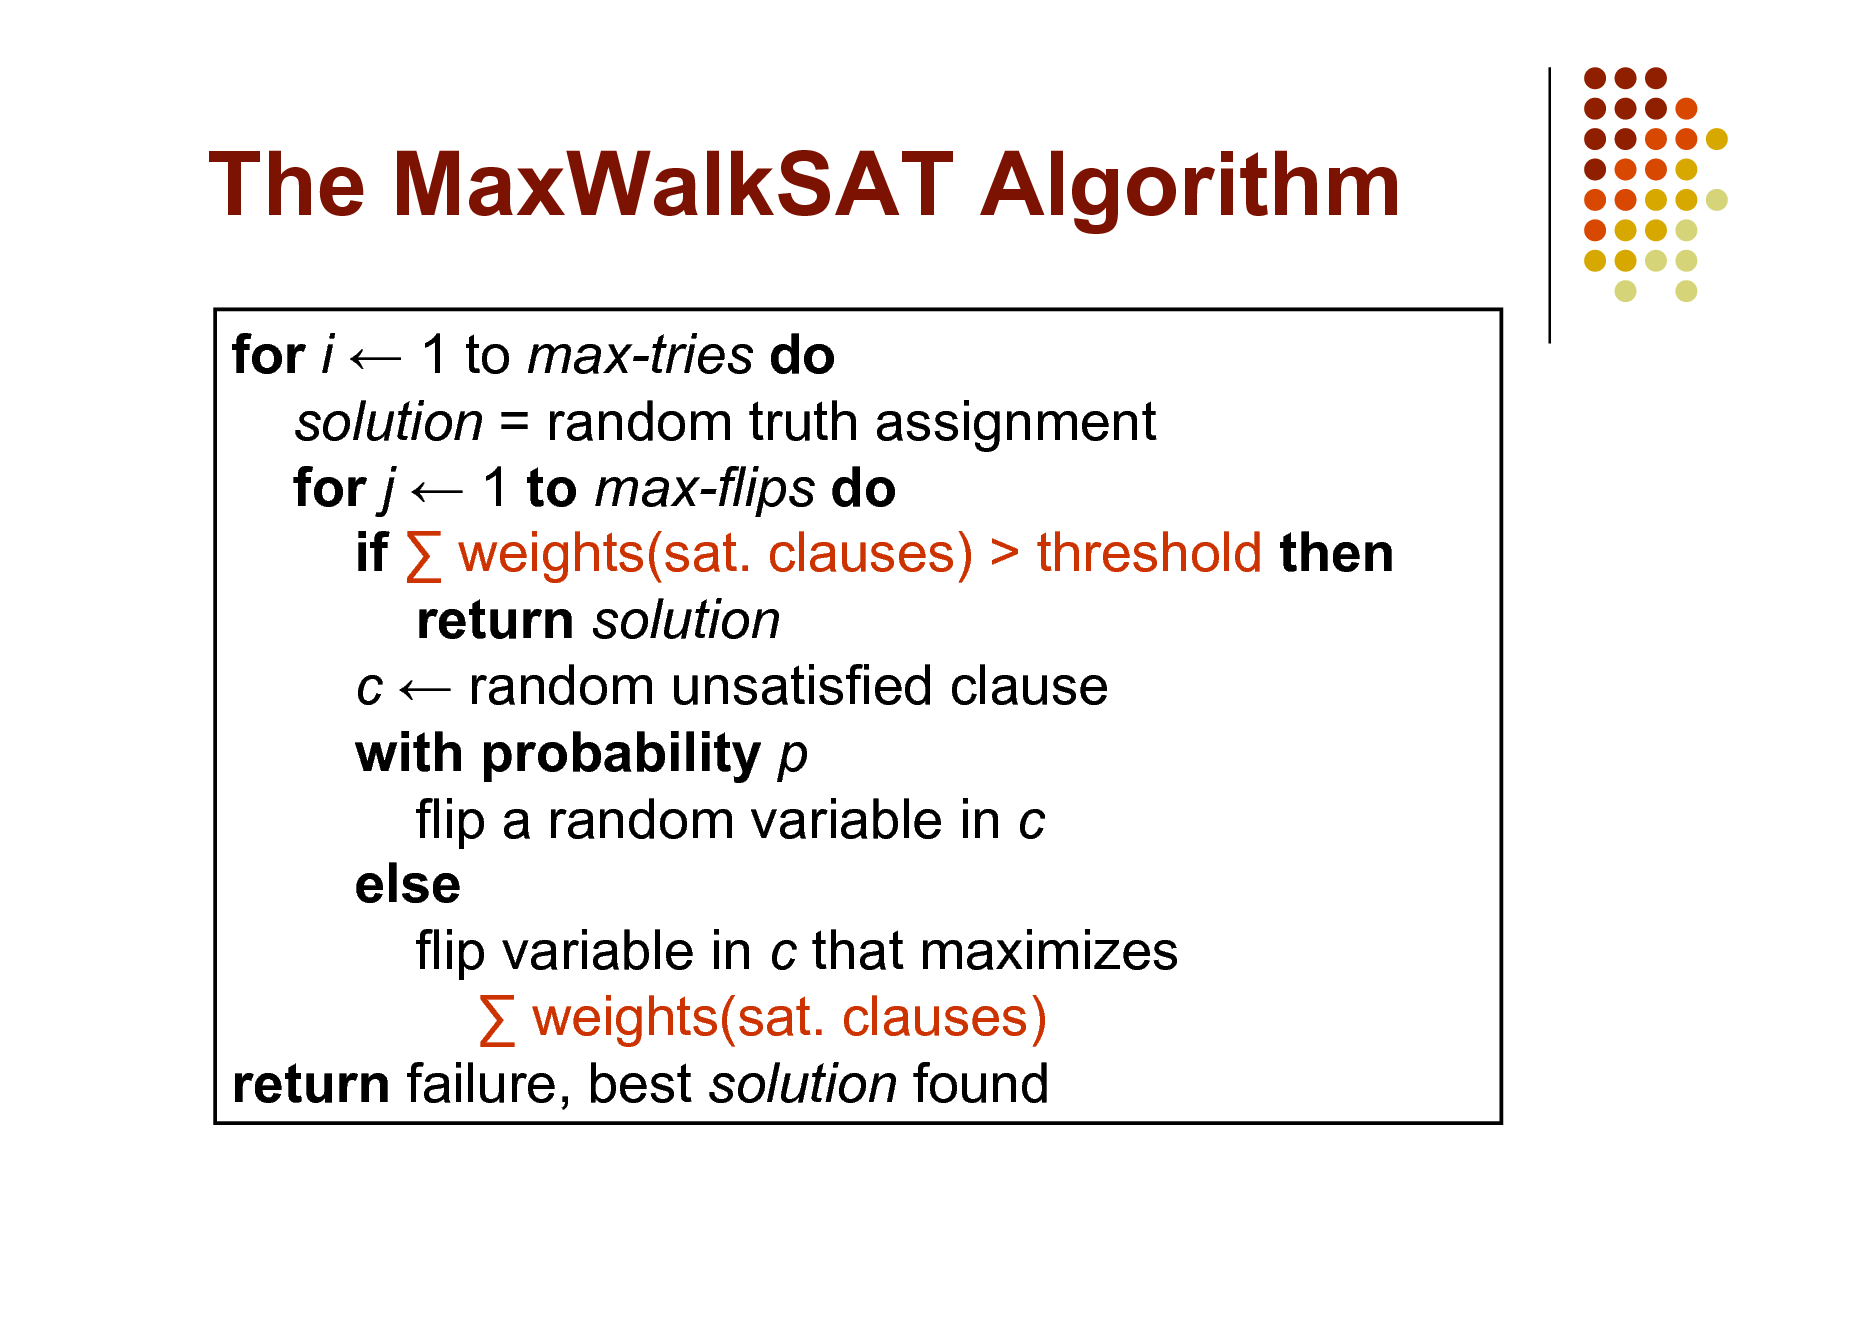 Slide: The MaxWalkSAT Algorithm for i  1 to max-tries do solution = random truth assignment for j  1 to max-flips do if  weights(sat. clauses) > threshold then return solution c  random unsatisfied clause with probability p flip a random variable in c else flip variable in c that maximizes  weights(sat. clauses) return failure, best solution found